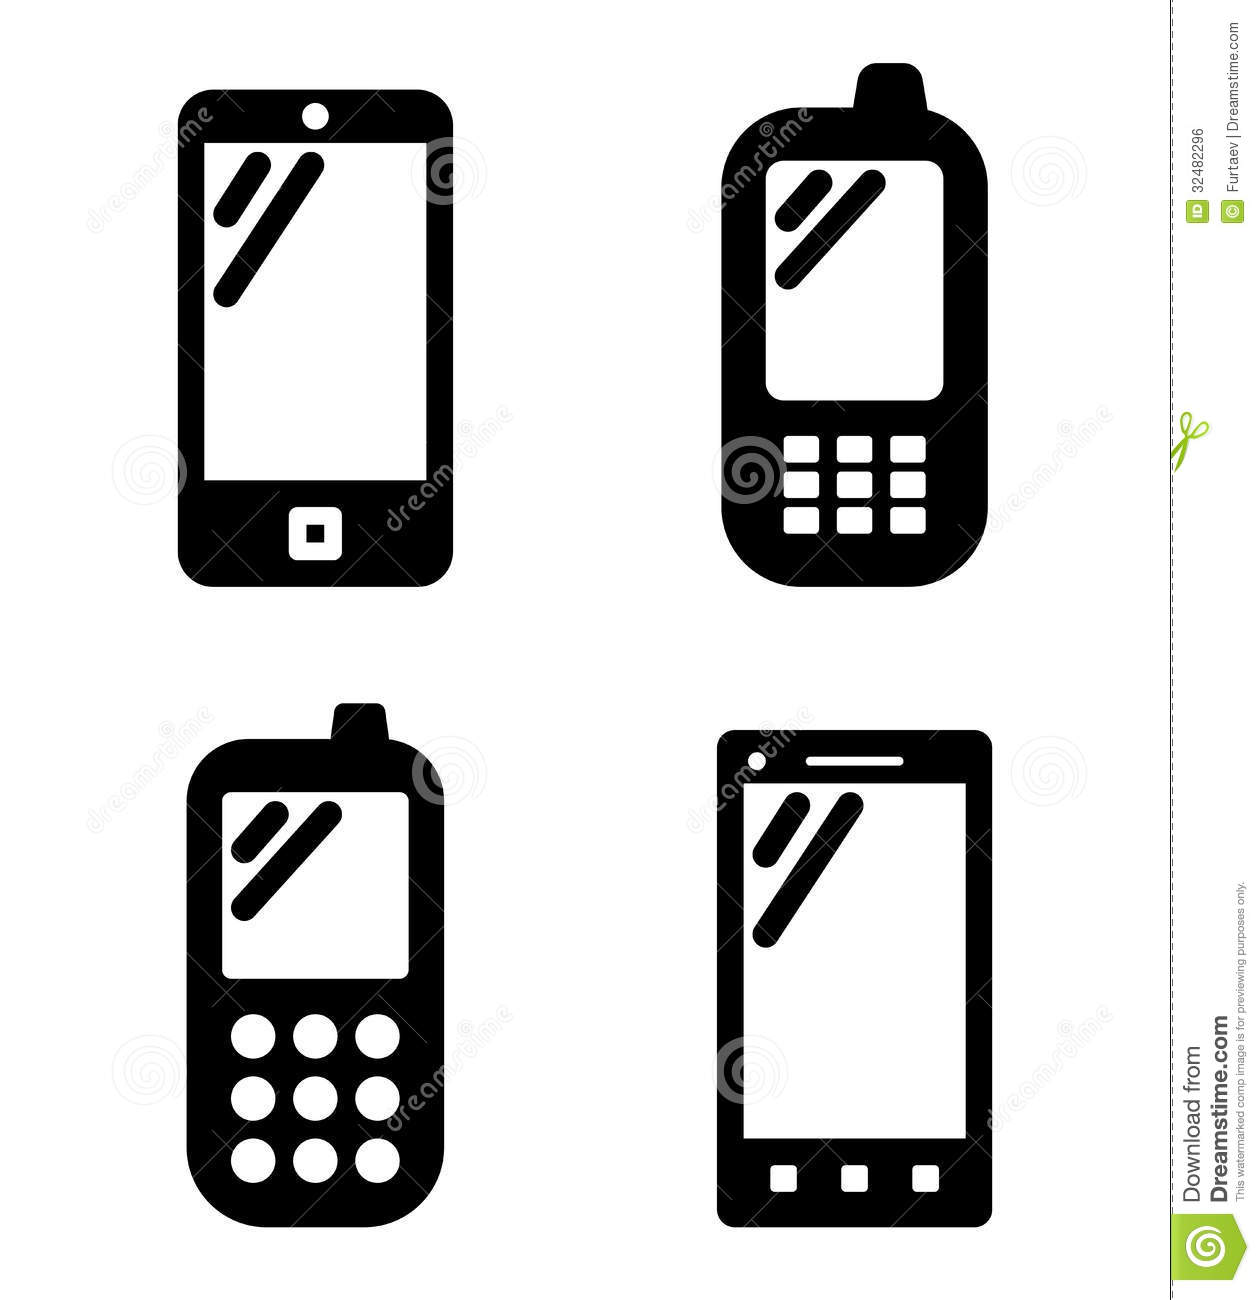 16 Vector Mobile Phone White Images